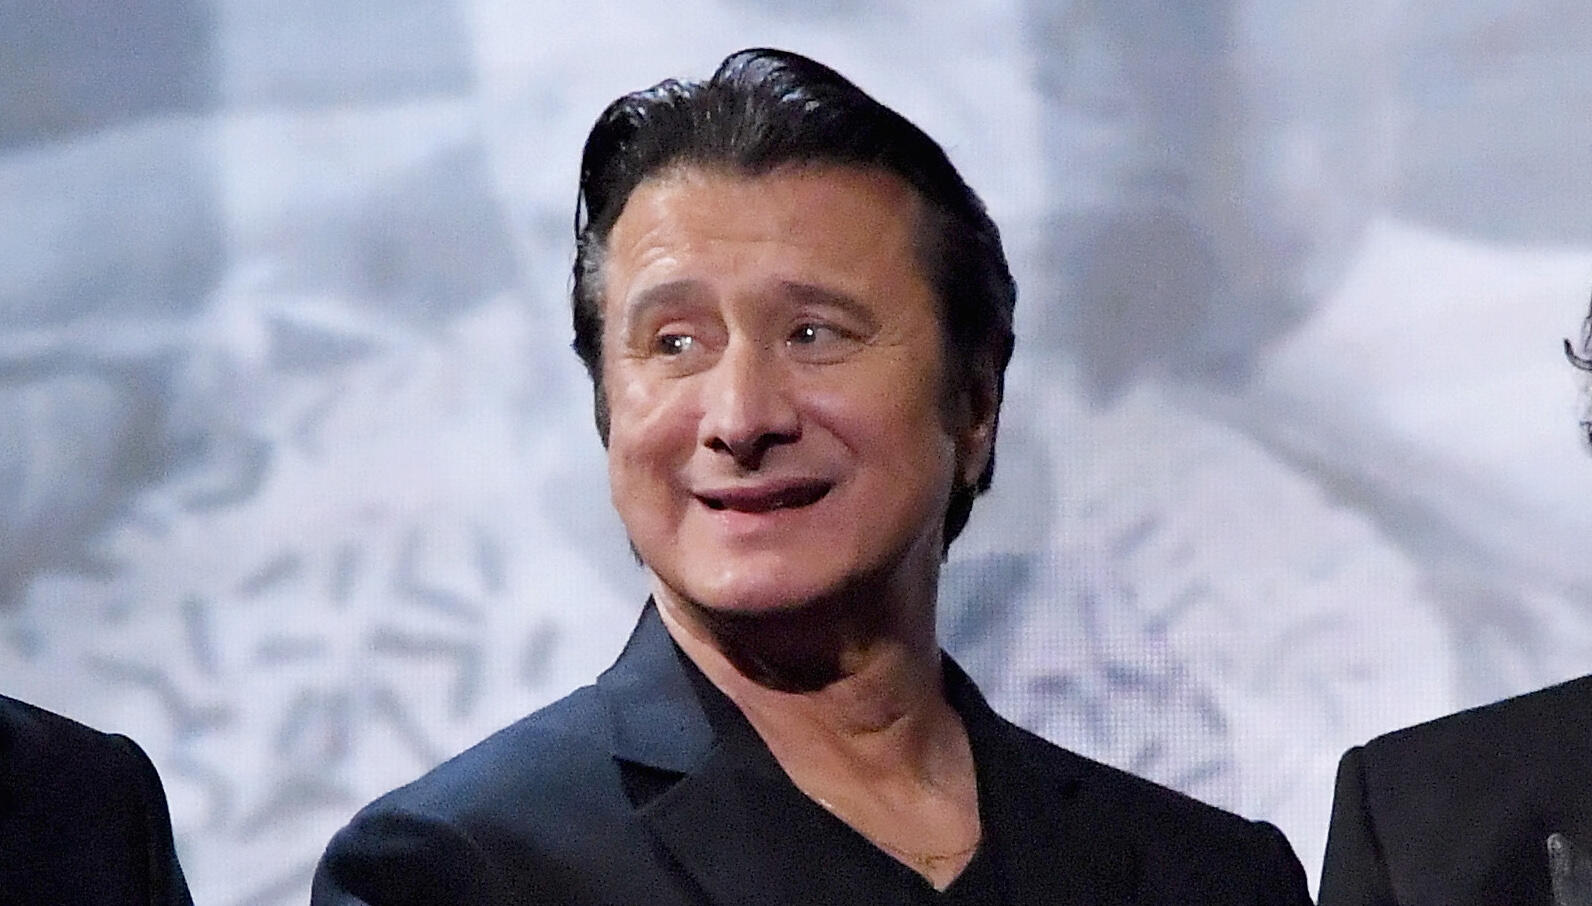 Steve Perry Announces Reimagined Album Release Coming Next Month